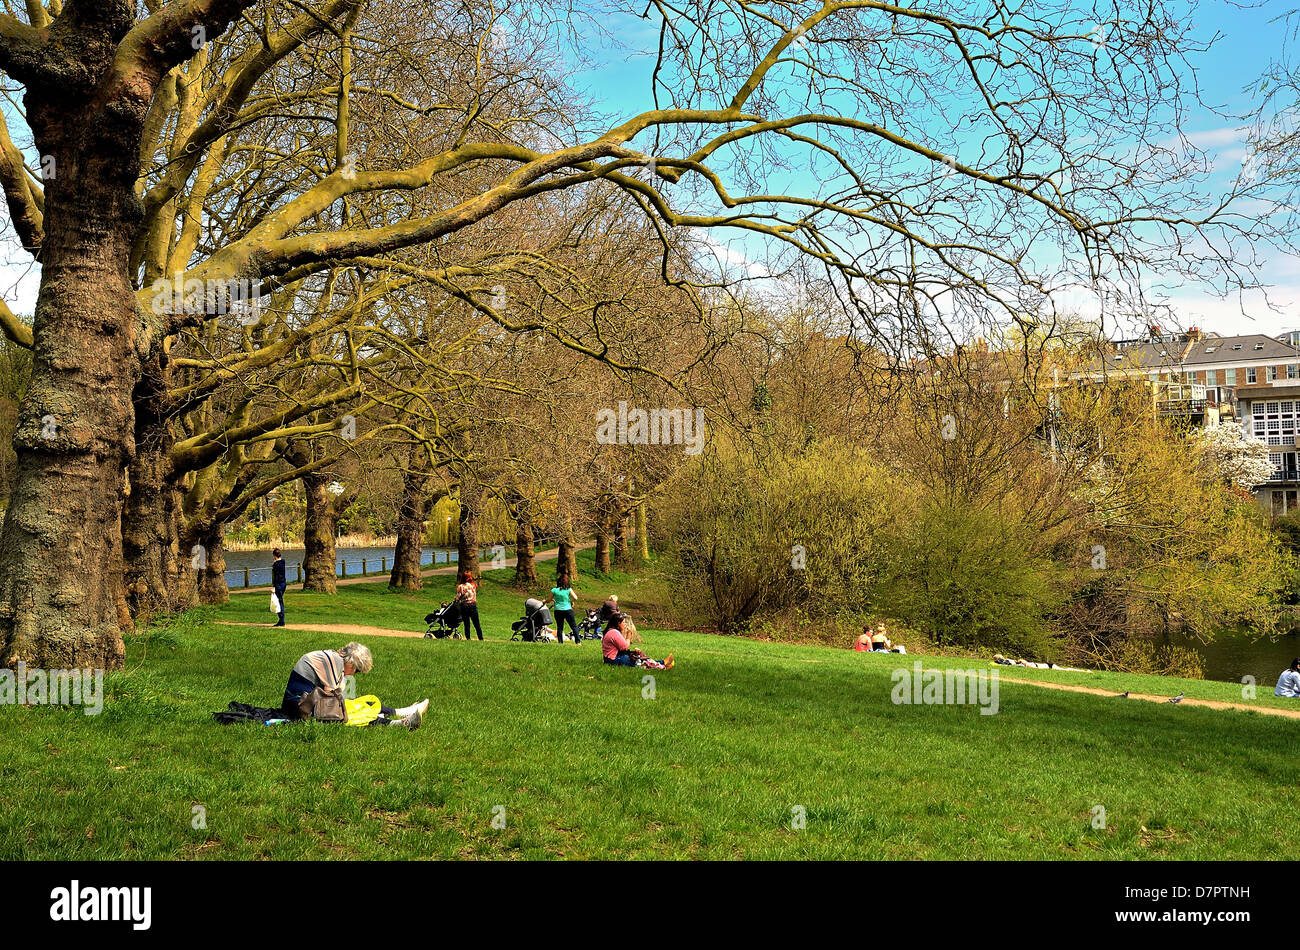 Hampstead Heath on a sunny spring day - Stock Image